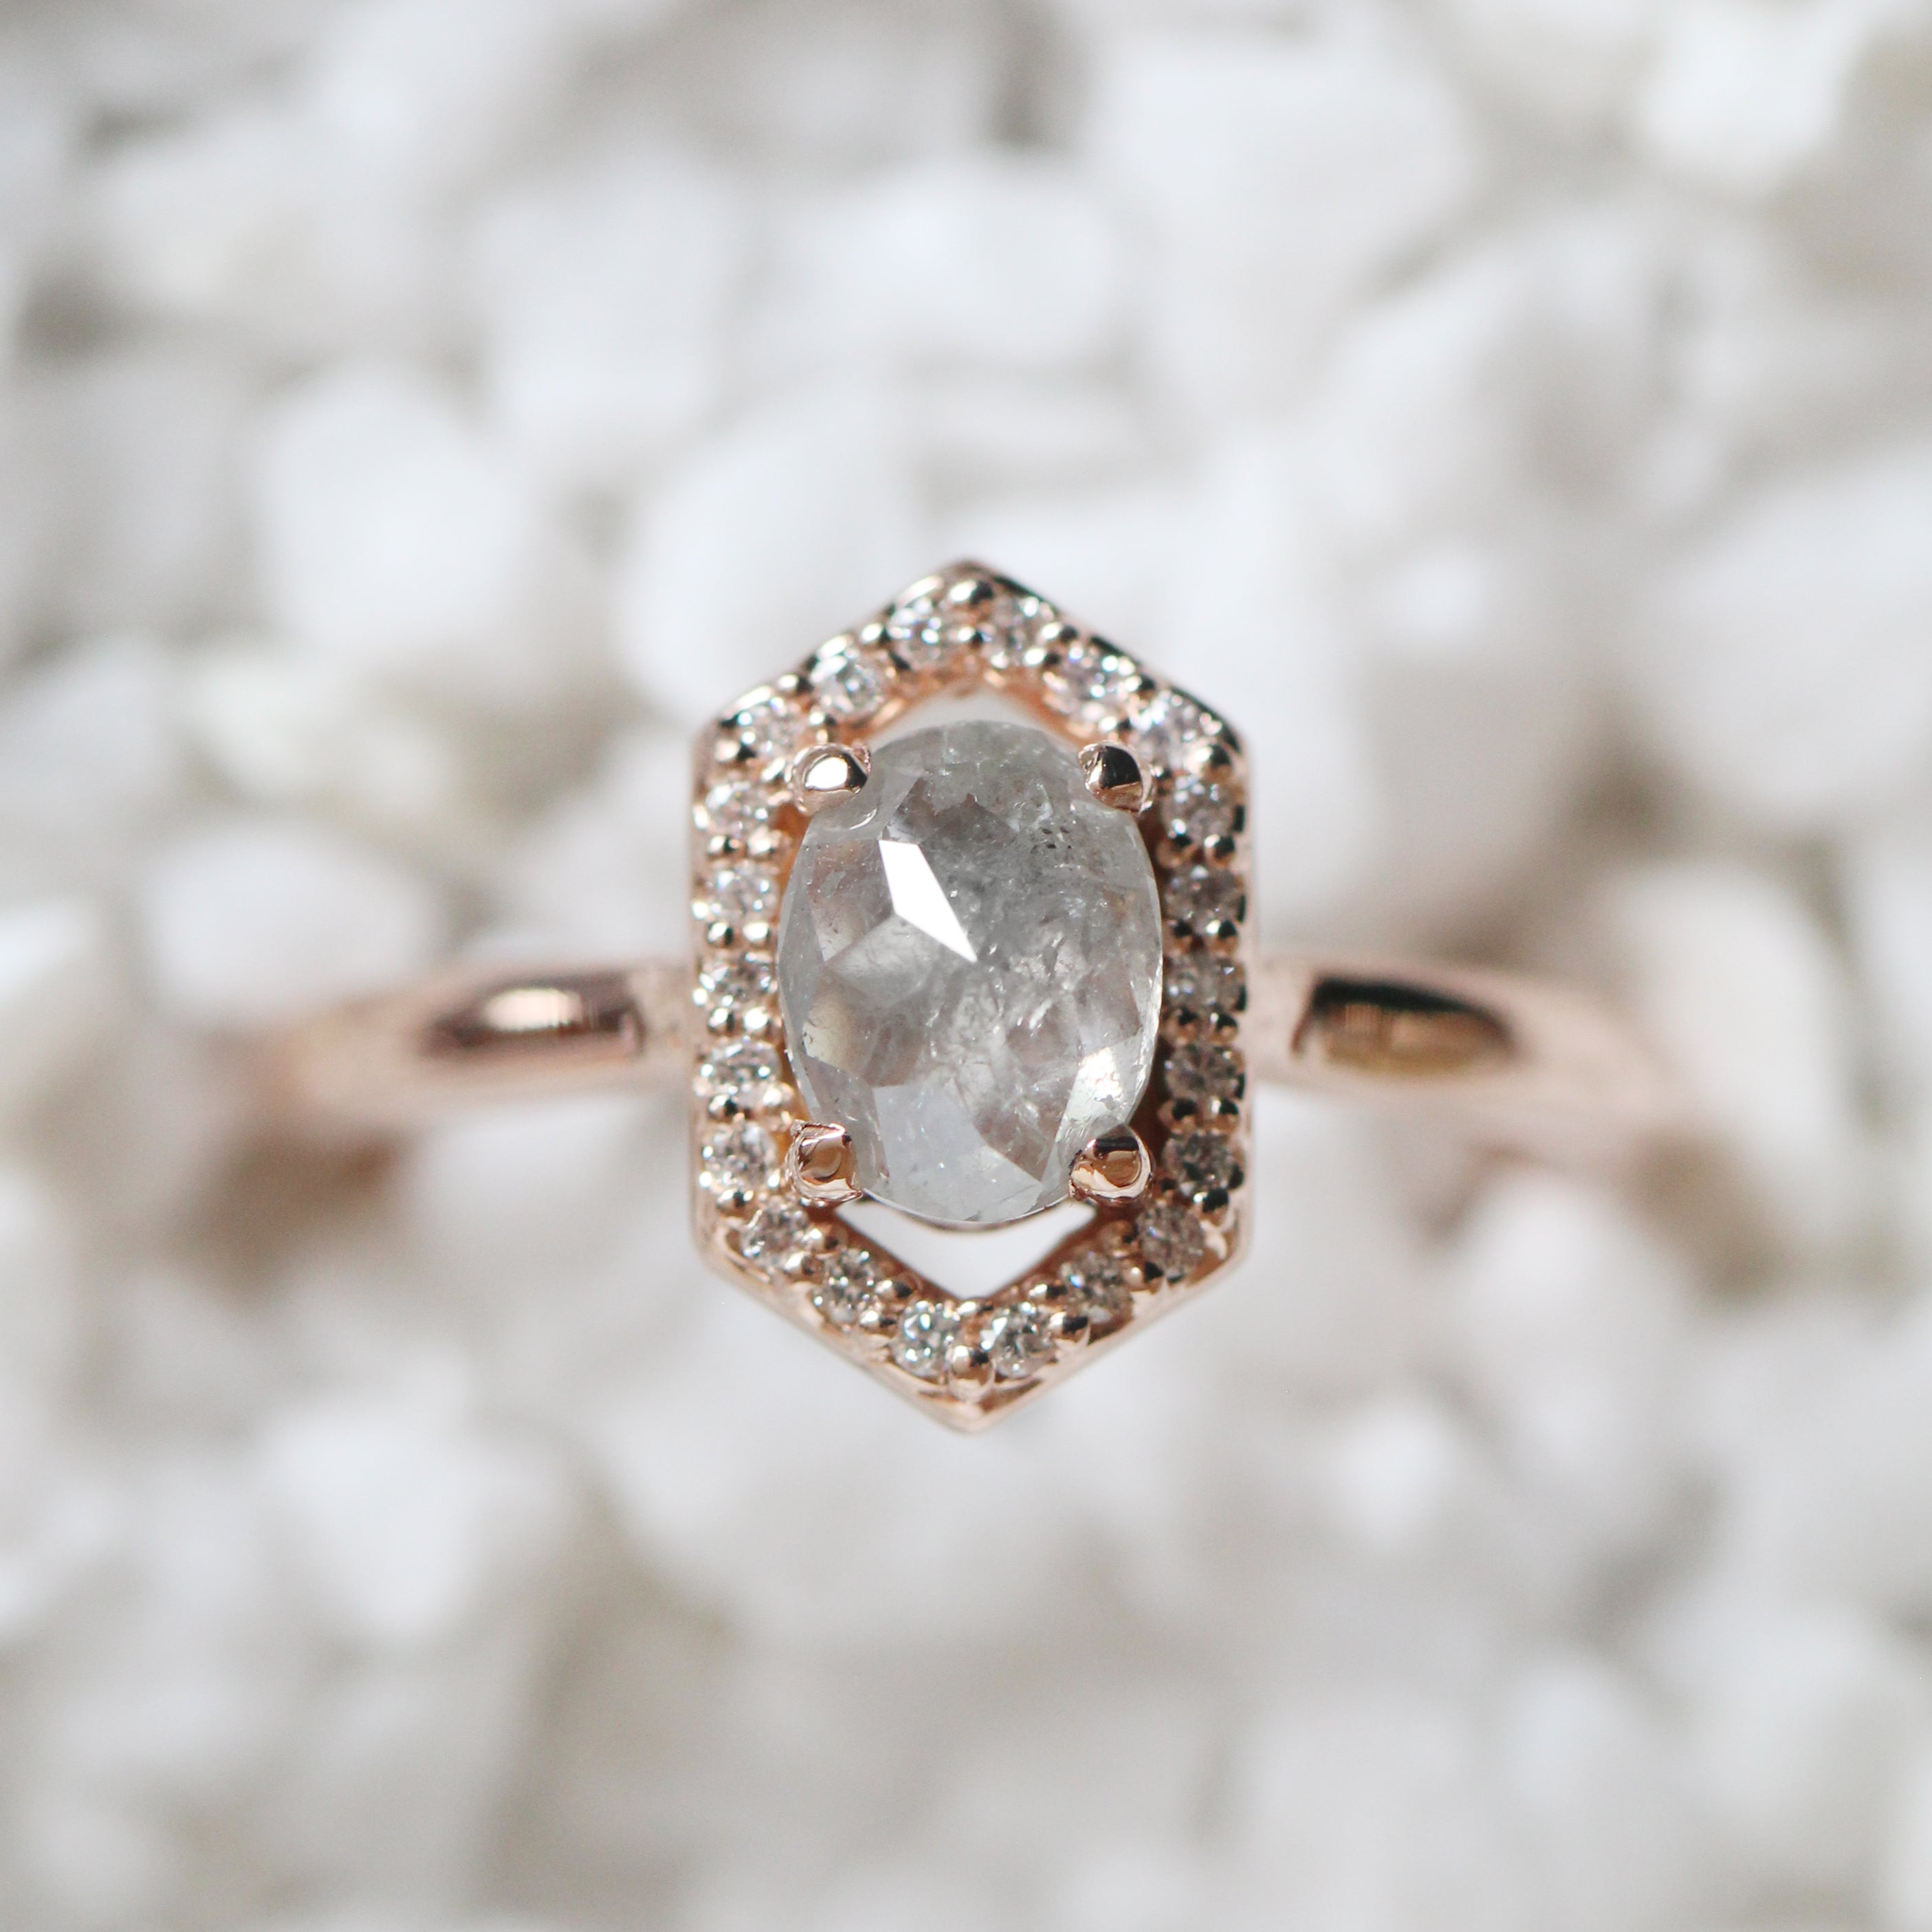 Etta Ring with a .84 carat rose cut oval celestial diamond white diamonds in 14k rose gold - ready to size and ship - Salt & Pepper Celestial Diamond Engagement Rings and Wedding Bands  by Midwinter Co.